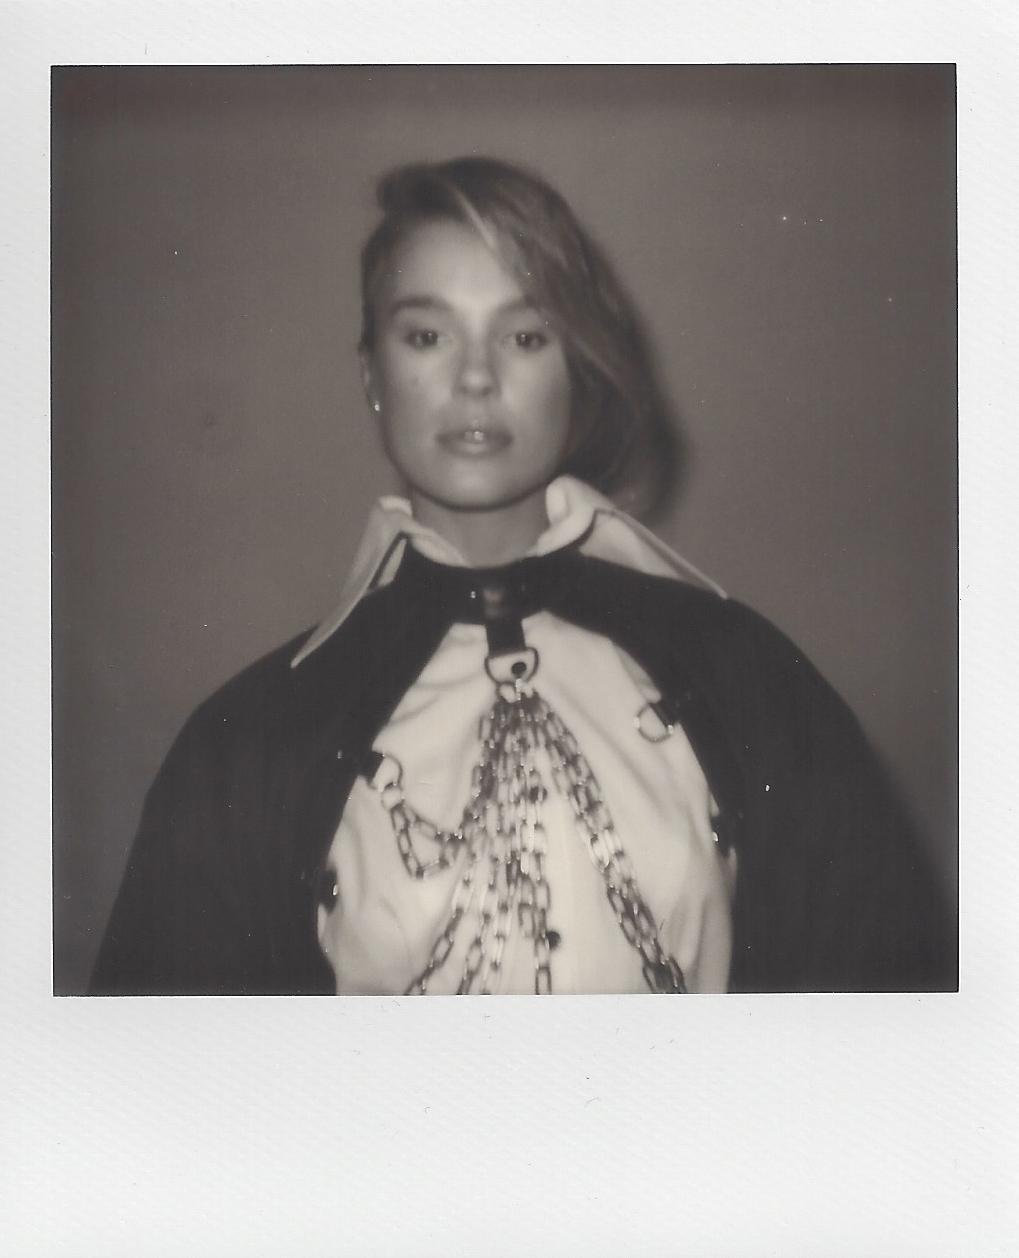 NYC_Fashion_Photographer_Polaroid_Behind_The_Scenes_Photoshoot_Impossible_Film_Camera_Women_Models_Victoris_Secret_Keke_Lindgard